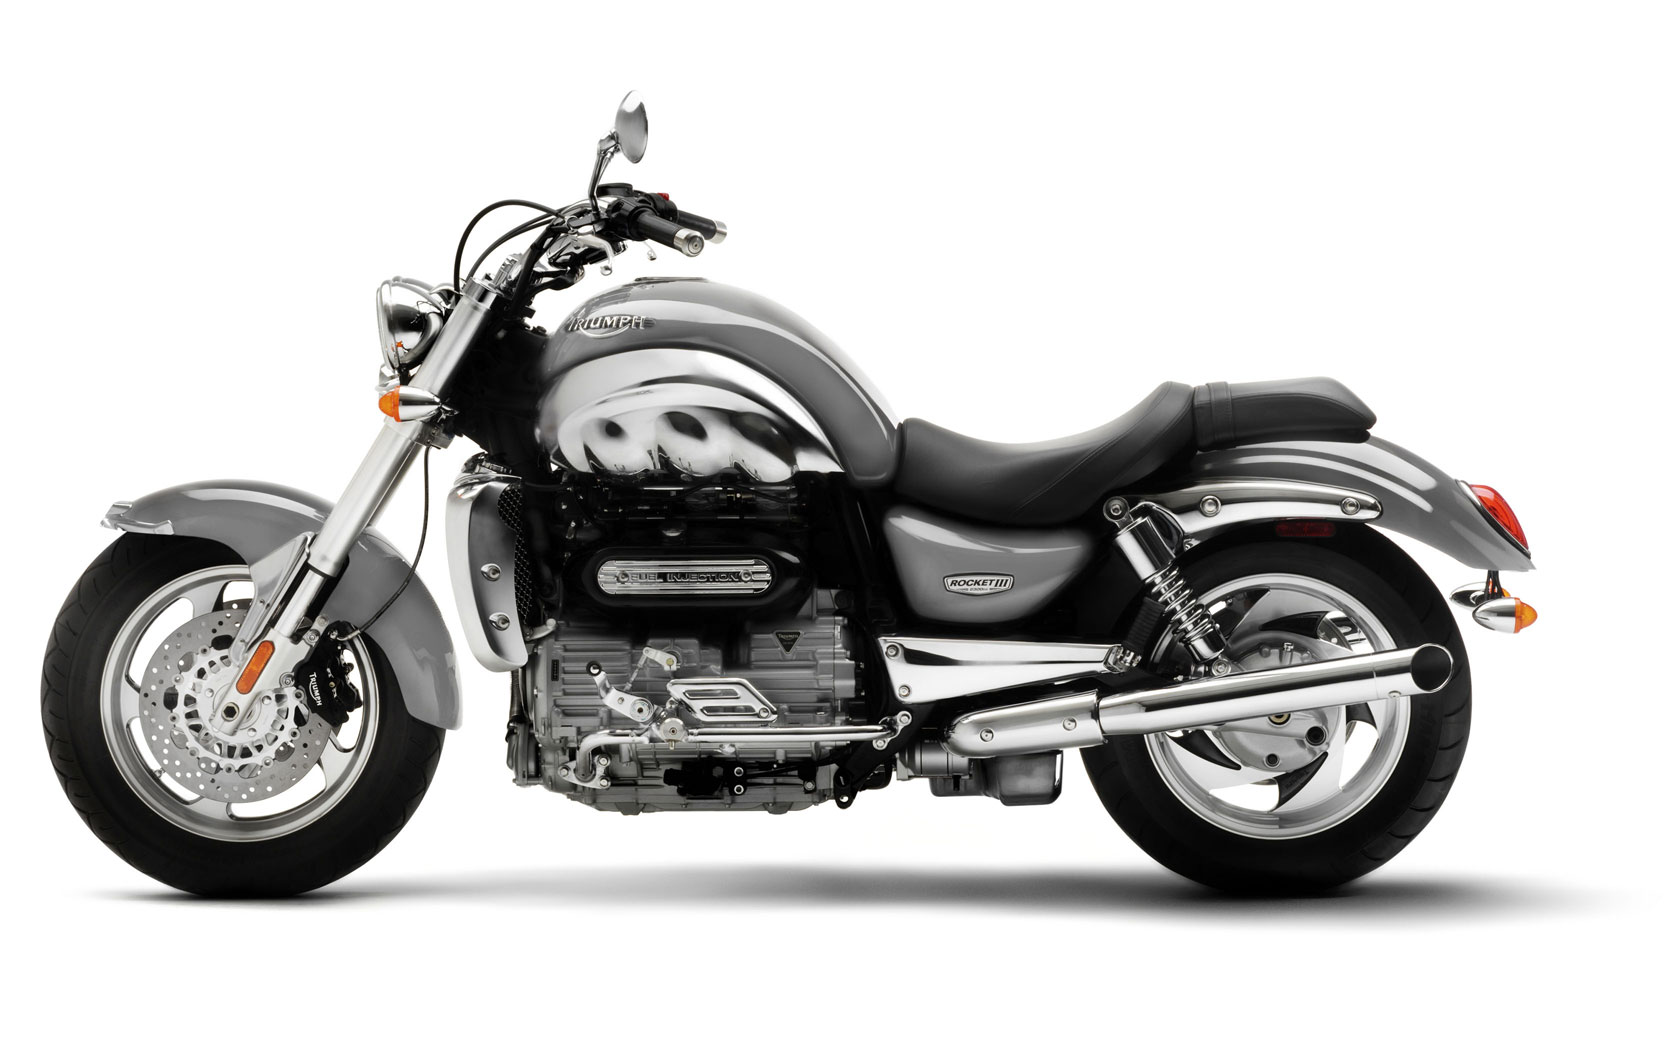 Triumph Rocket III 2004 images #125251